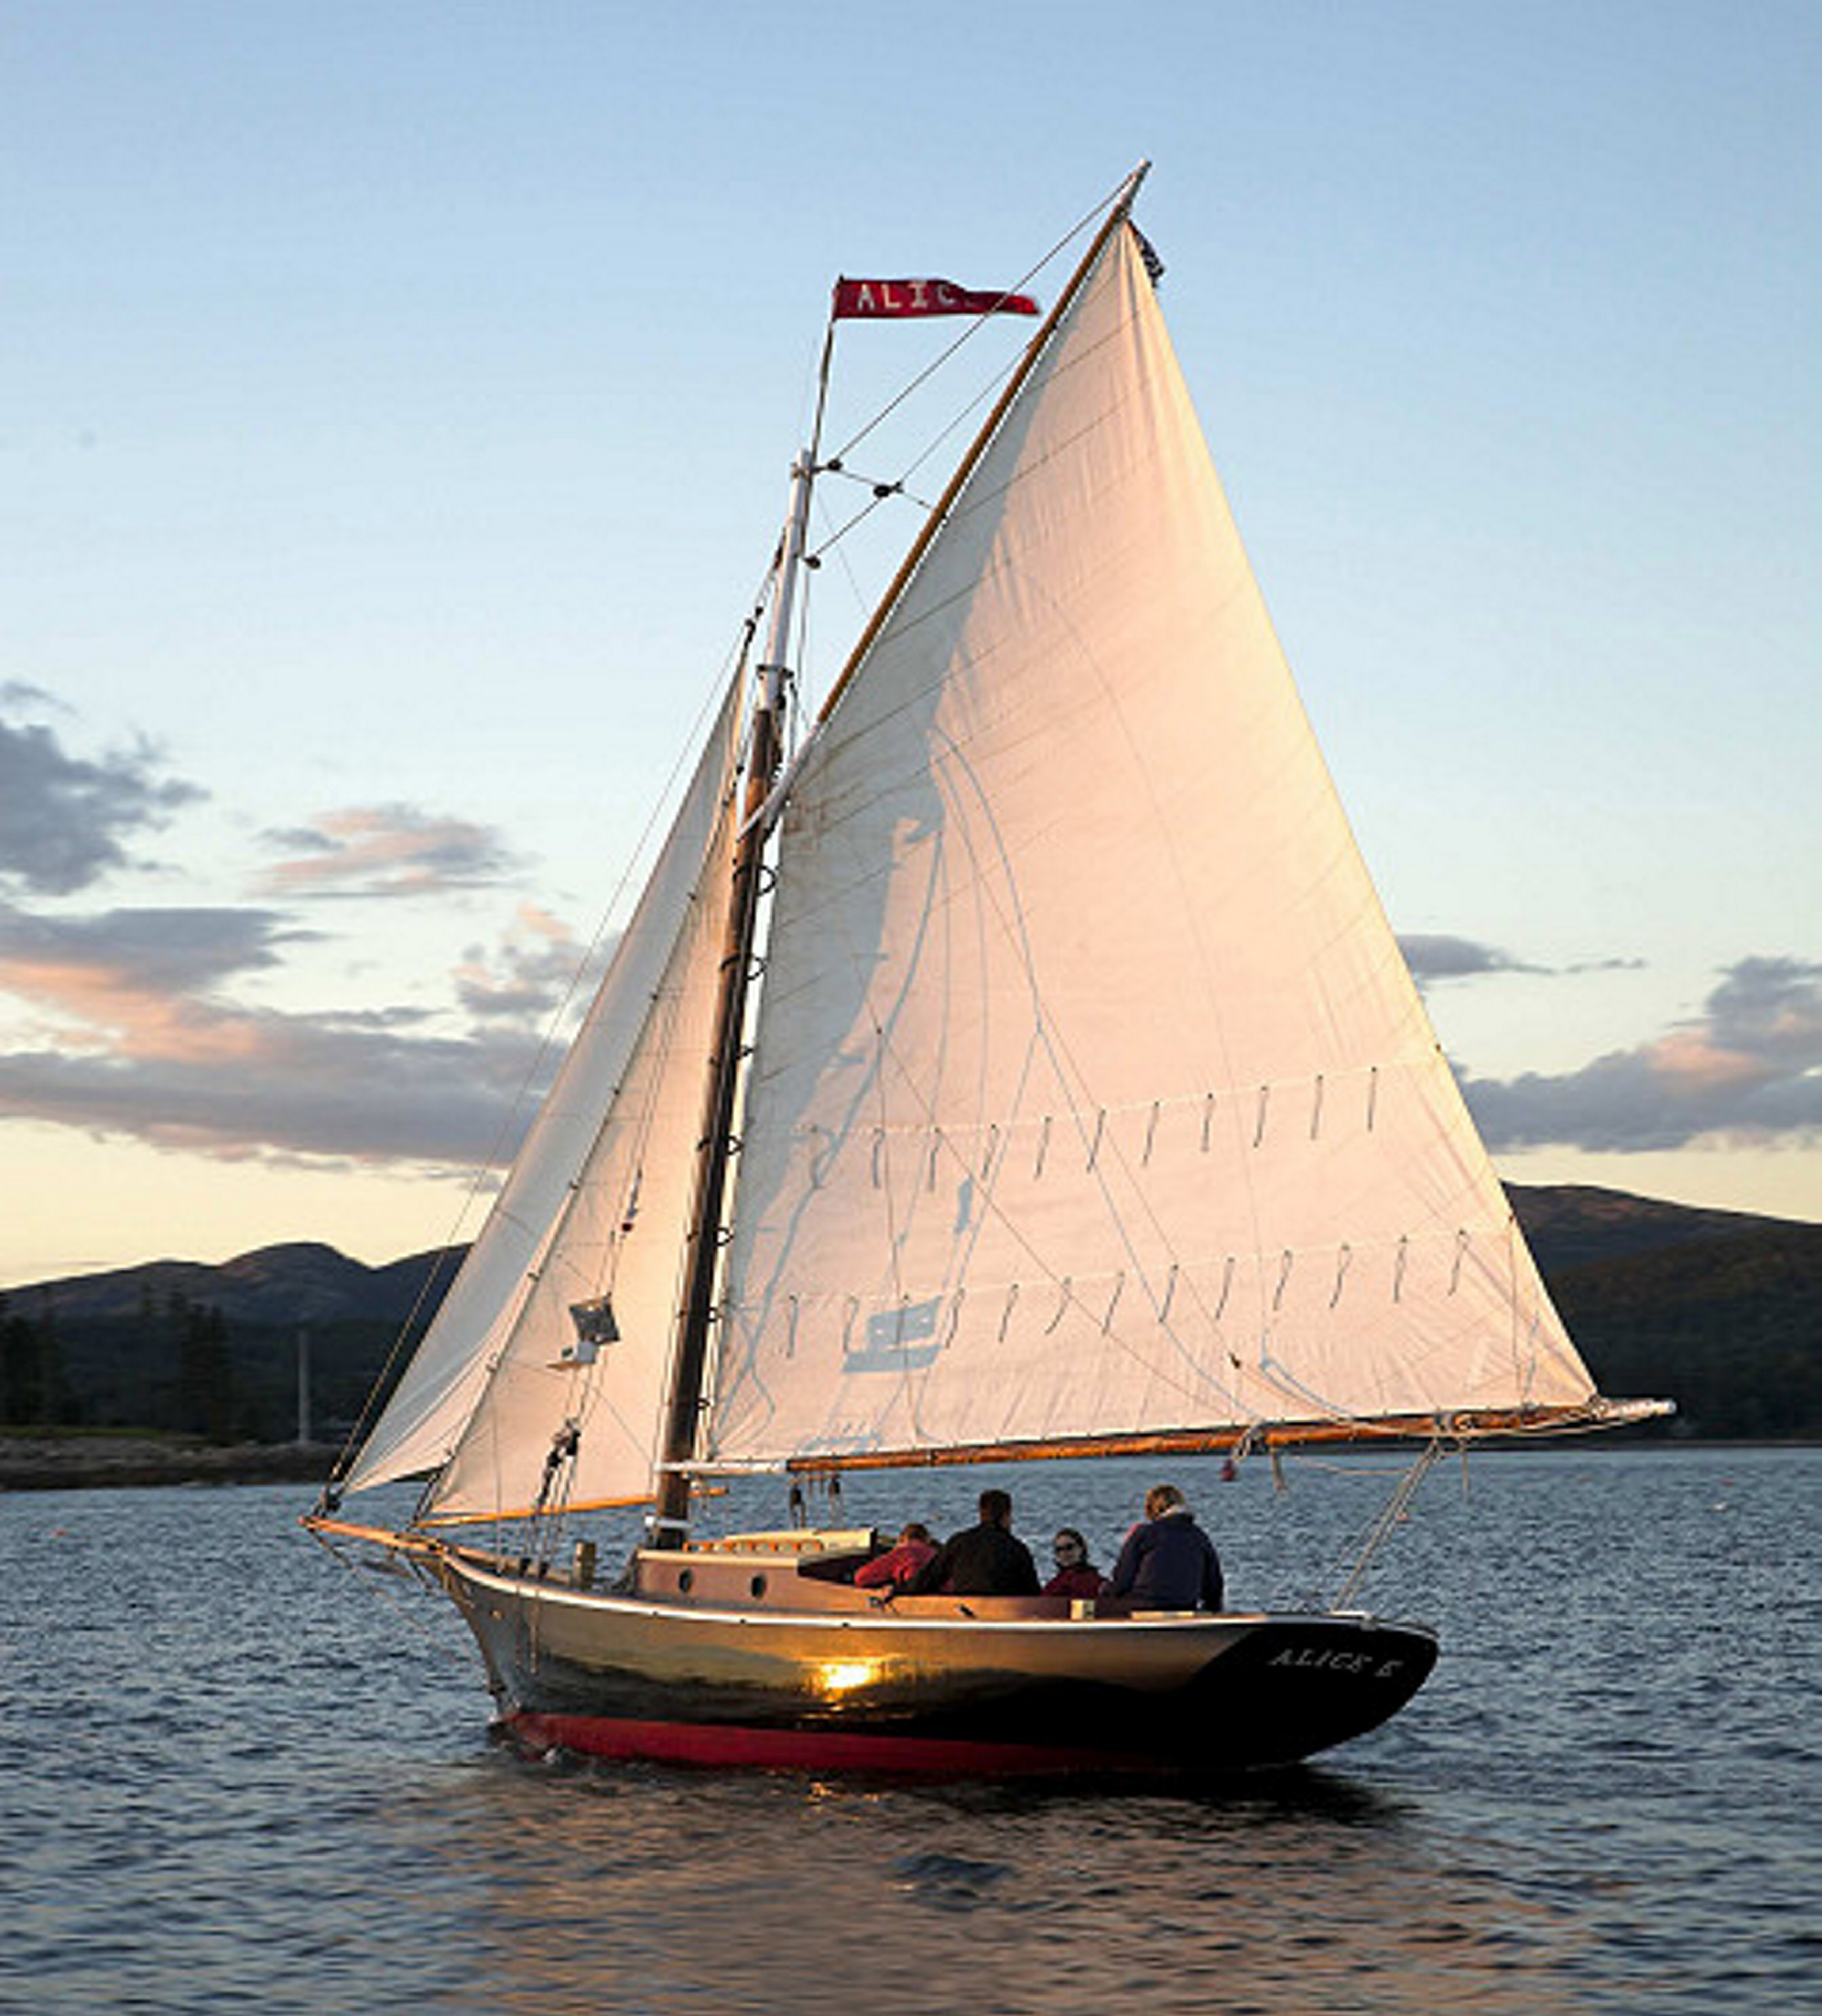 Couples who want to be married on the water could rent the Friendship sloop Alice E. Photo courtesy of SailAcadia